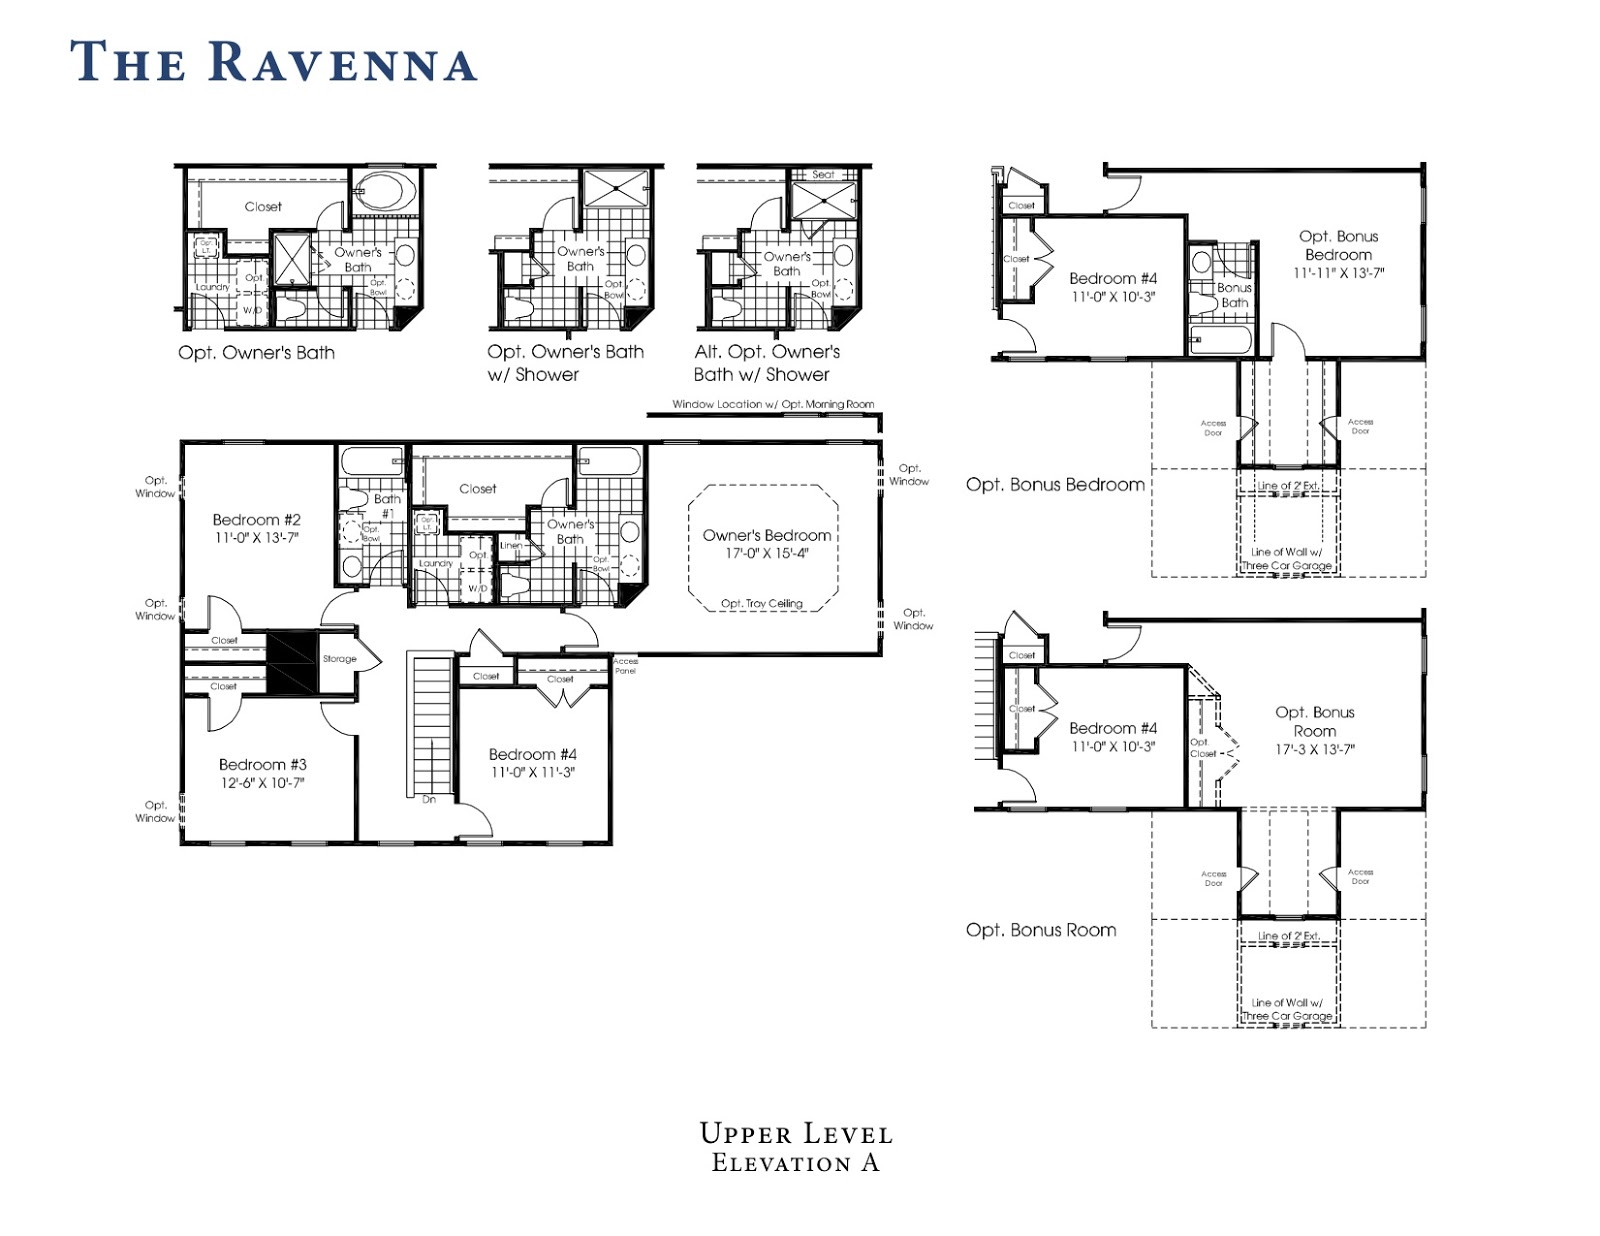 Journey to Ravenna model with Ryan: New Ravenna Floor Plan on ryan homes floor plans ohio, ryan homes naples floor plan, ryan homes springbrook floor plan, ryan homes pisa torre floor plan, ryan homes palermo floor plan, ryan homes brentwood floor plan, ryan homes dunkirk floor plan, ryan homes rome model floor plan, ryan homes lexington floor plan, ryan homes genoa floor plan, sainte-chapelle paris floor plan, saratoga springs treehouse villa floor plan, milan townhouse floor plan, ryan homes jefferson floor plan, ryan homes rome inside, ryan homes somerset floor plan, sewickley ryan homes floor plan, ryan homes courtland floor plan, ryan homes stanford floor plan, ryan homes vienna floor plan,